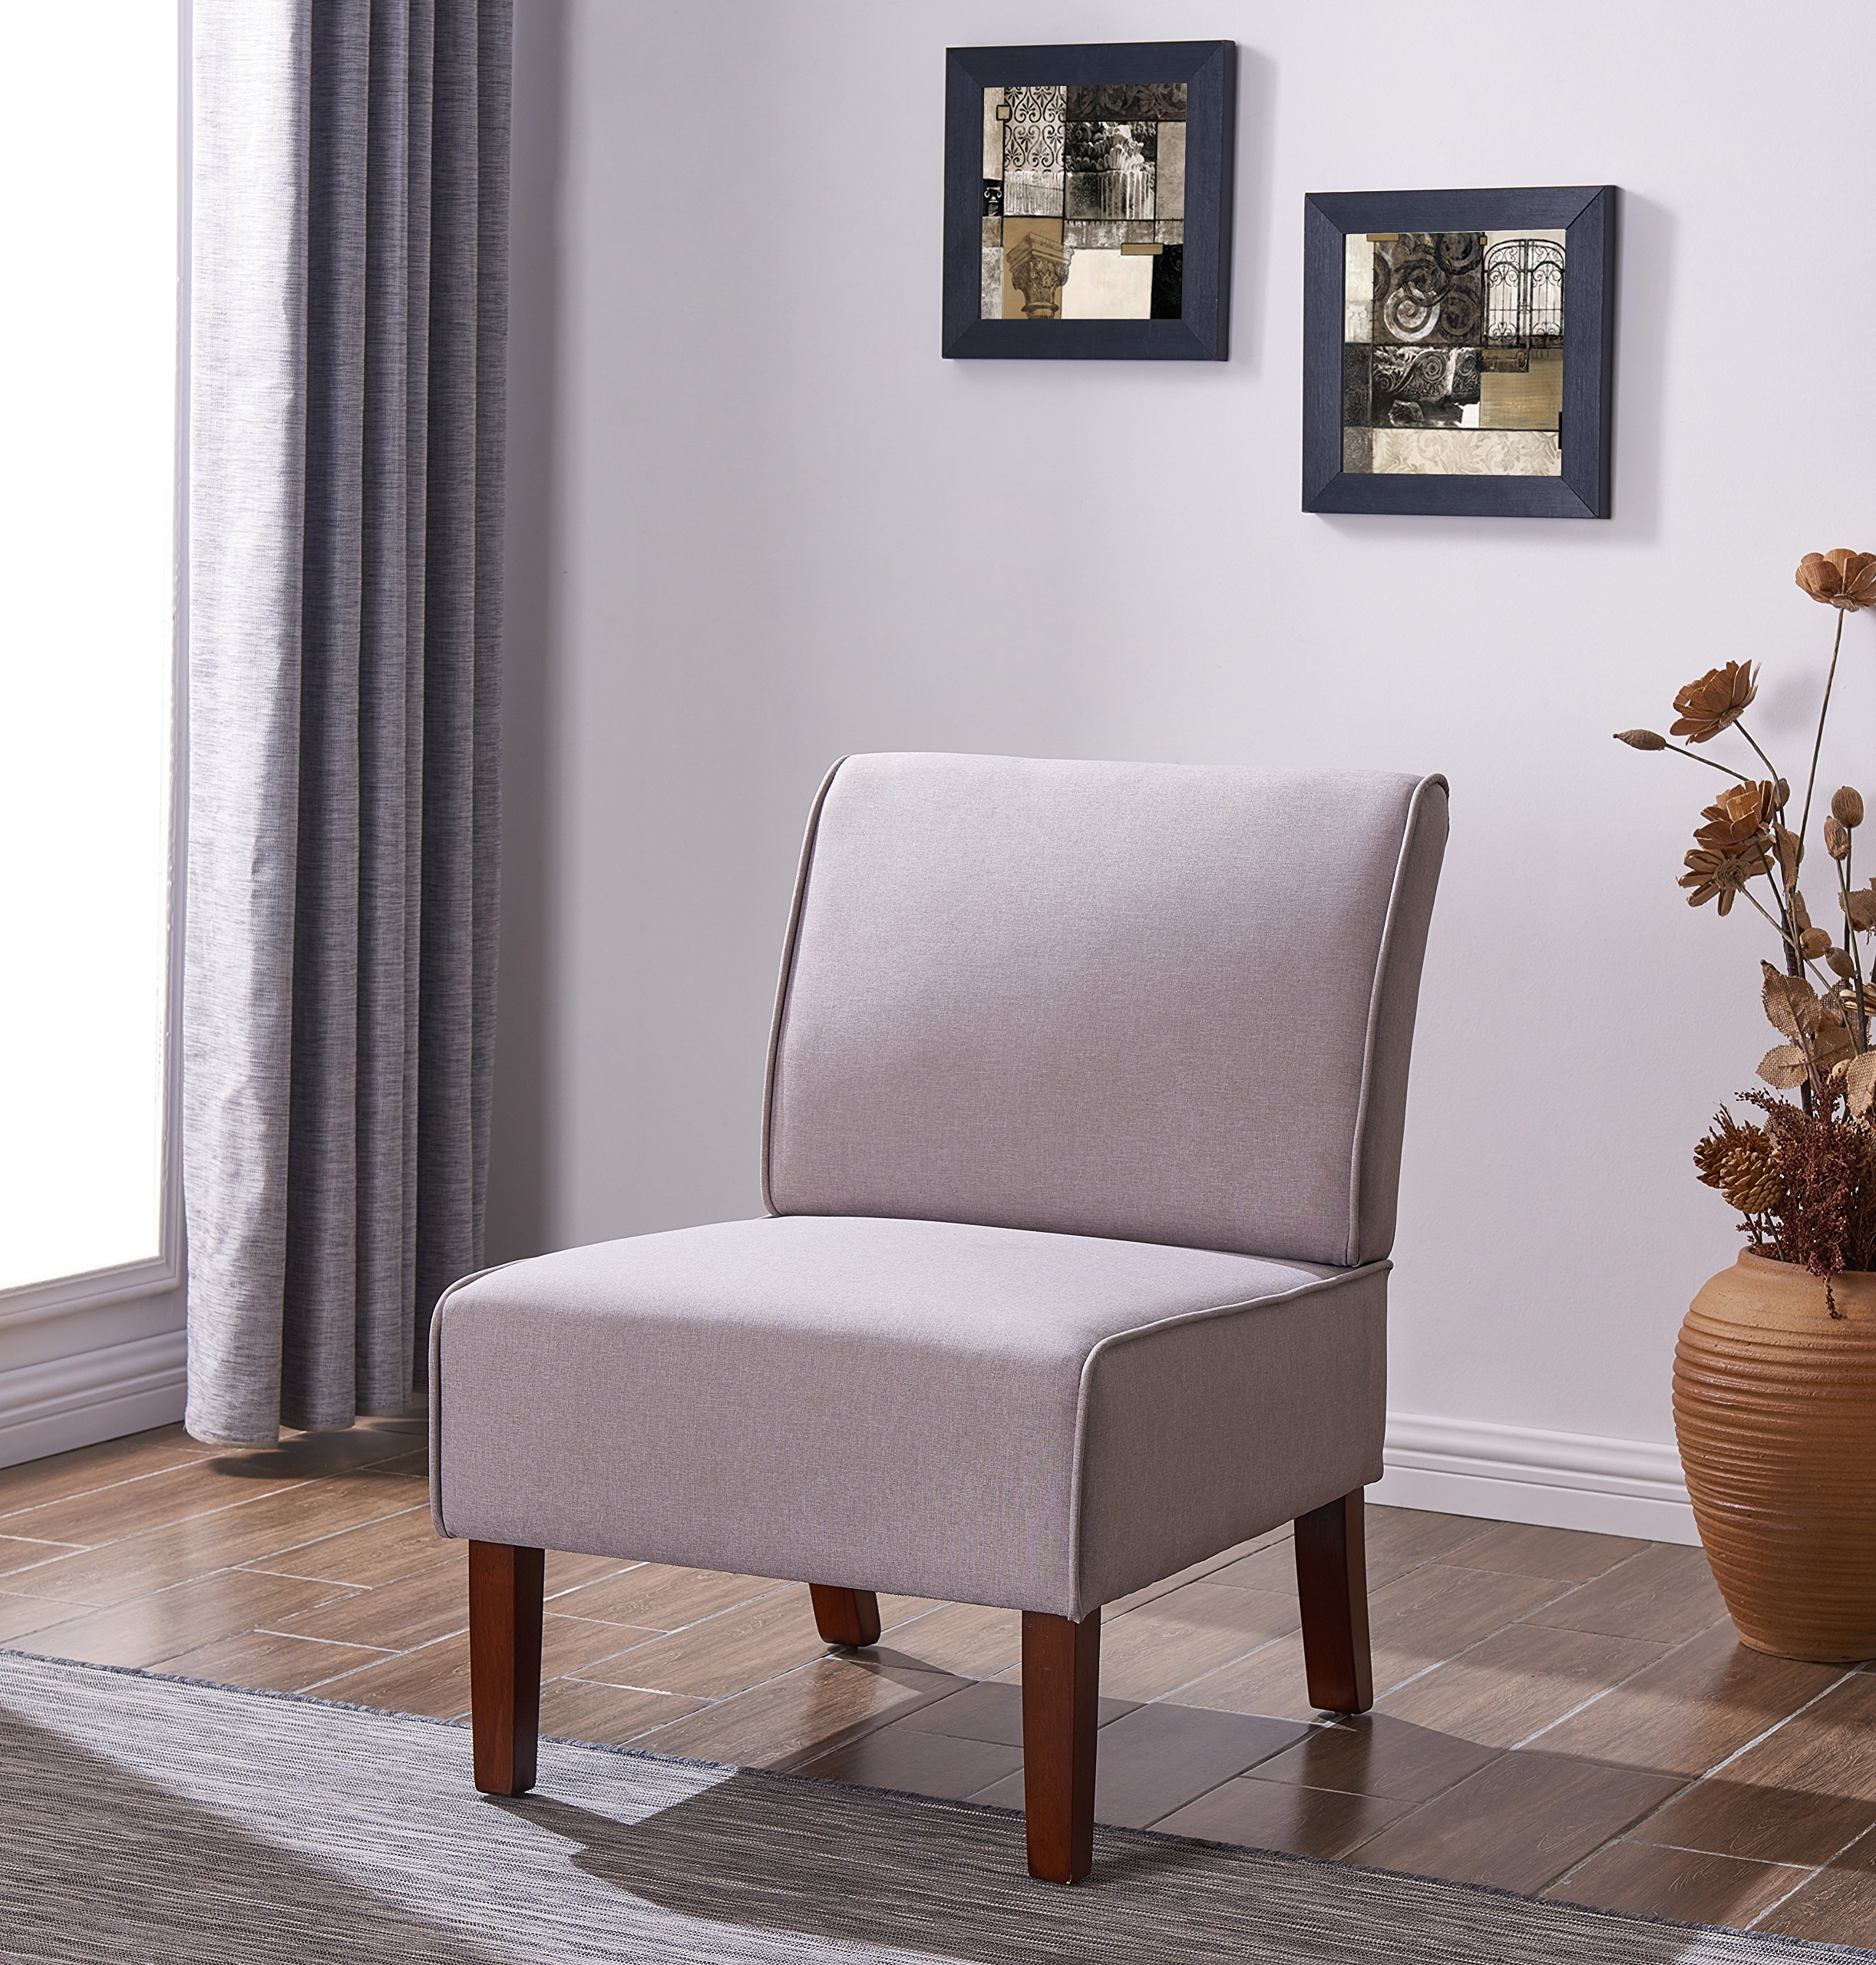 EBS My Furniture Armless Fabric Accent Chair Living Room Bedroom Office Meeting Room (Light Grey)